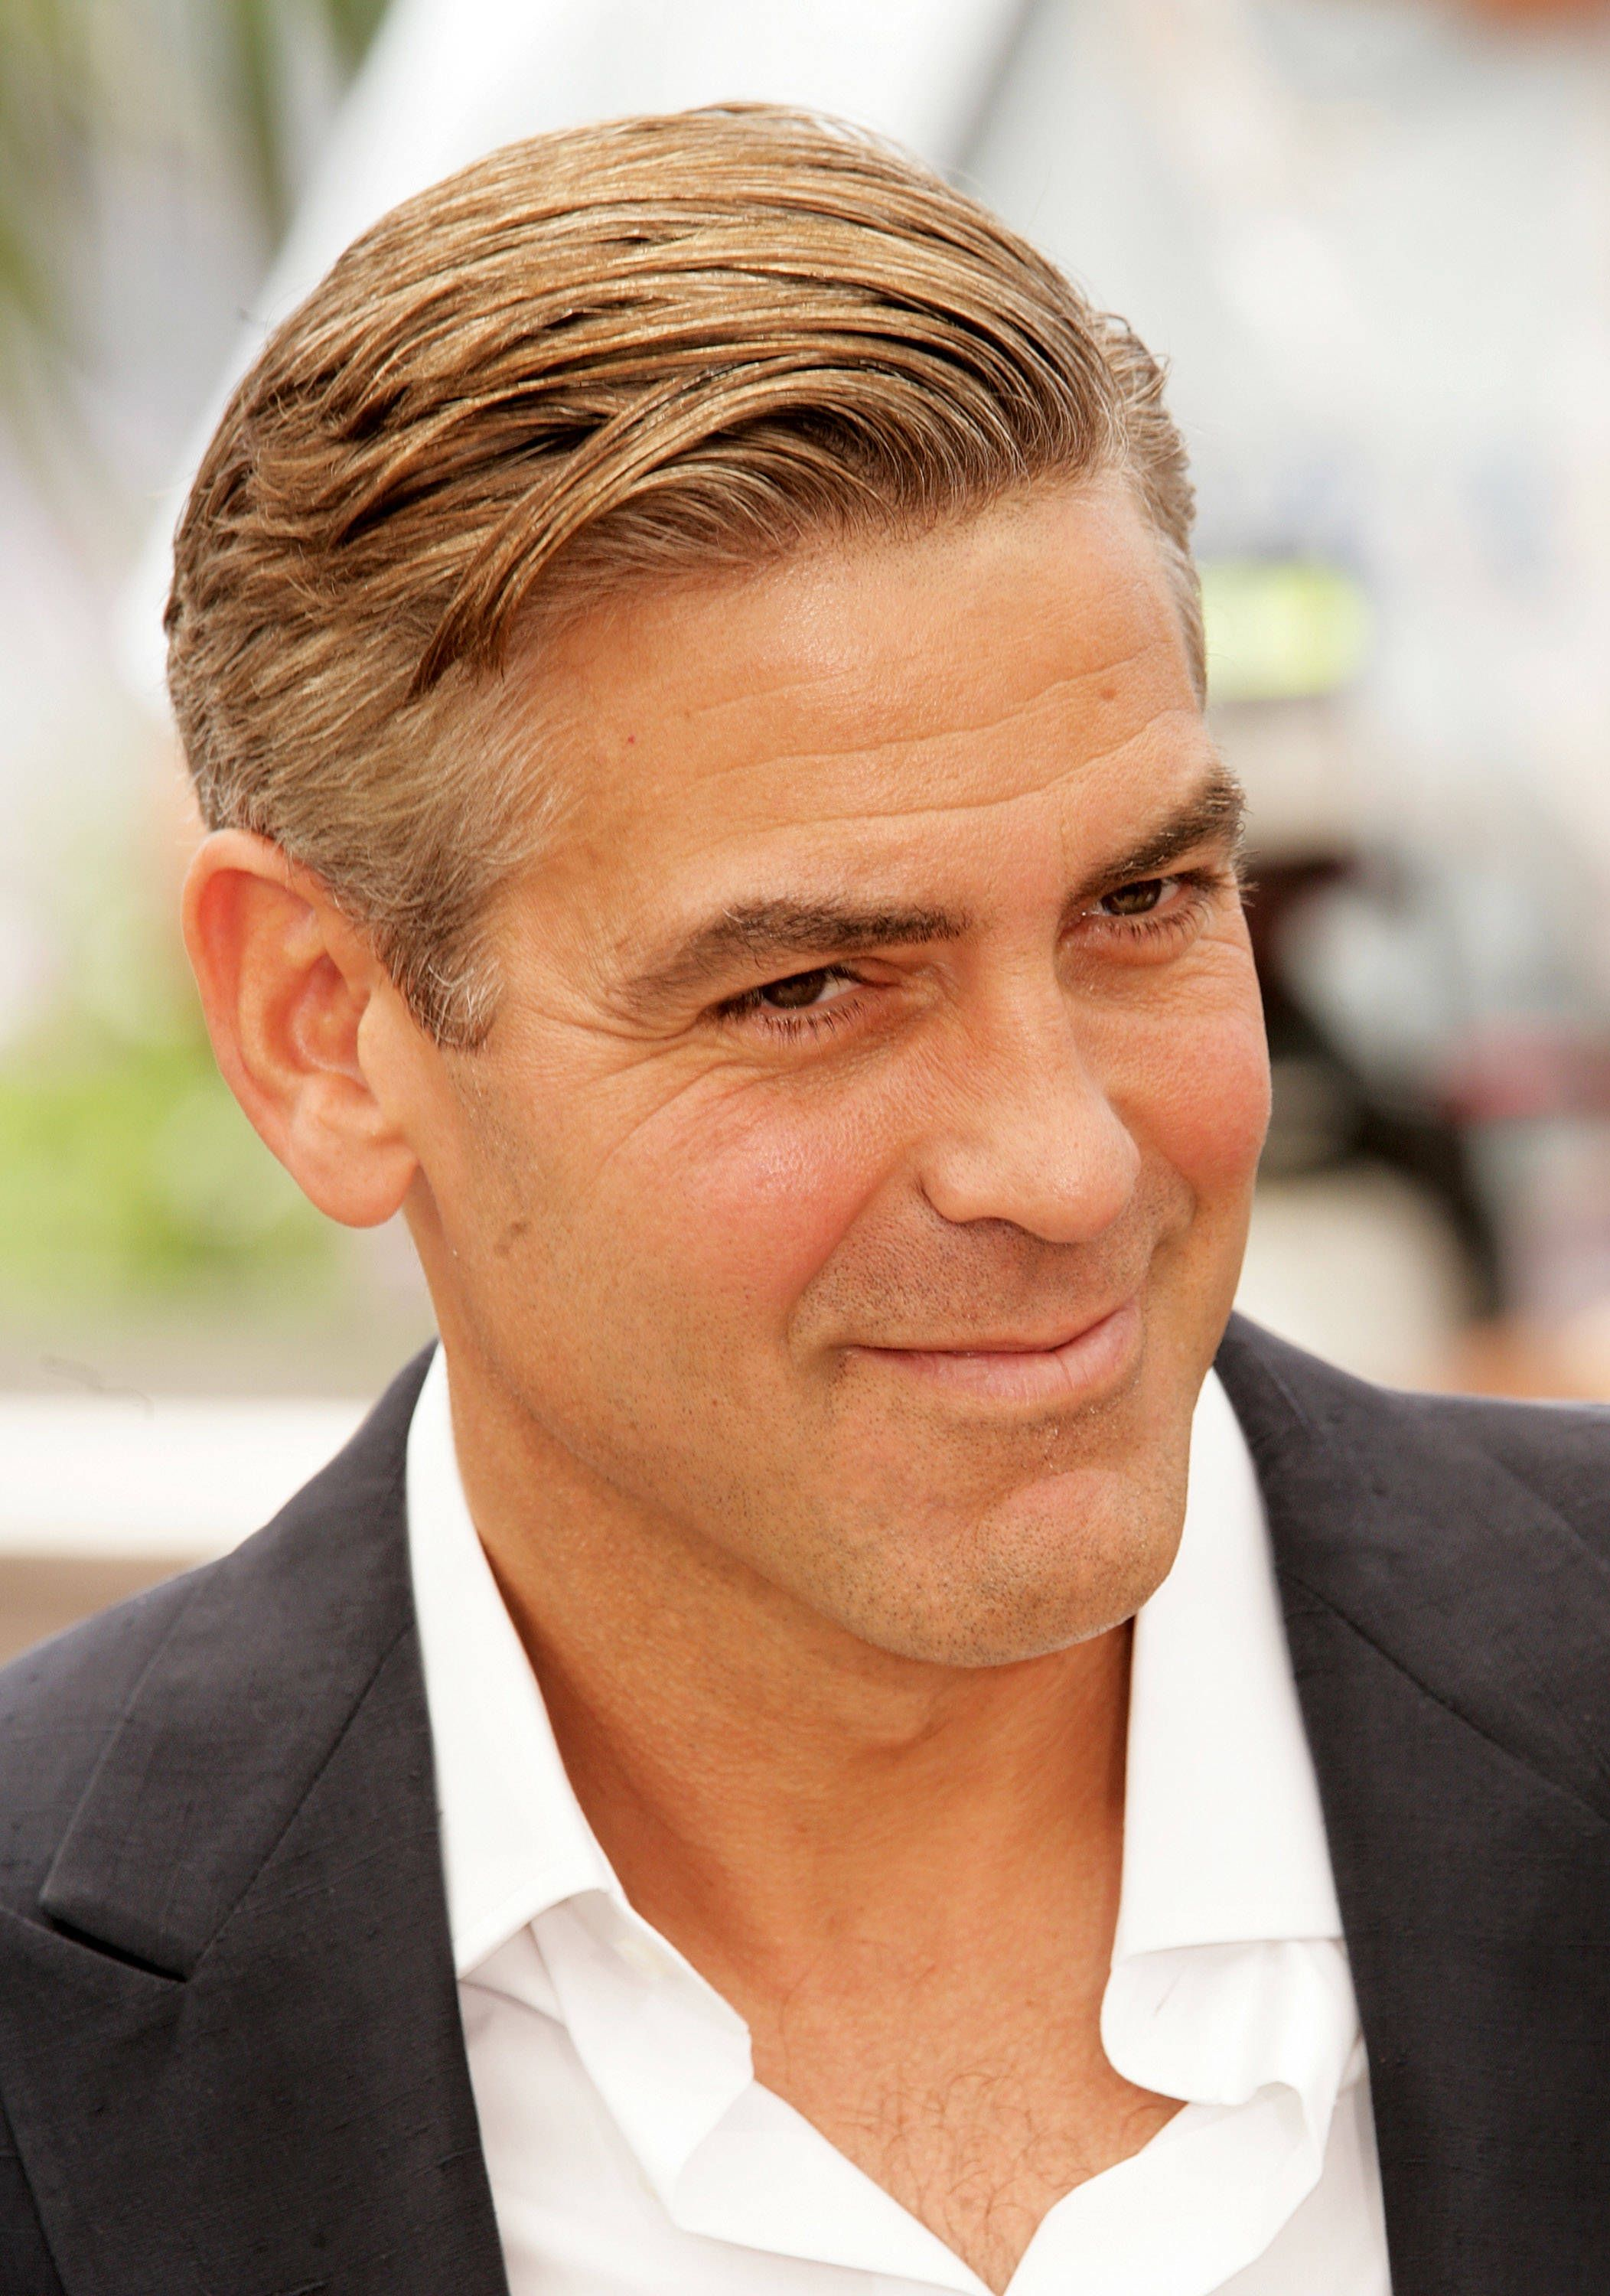 Classic Mens Hairstyles classic hairstyles for men skin fade with side part and brush back Gallery Of Short Hairstyles For Men